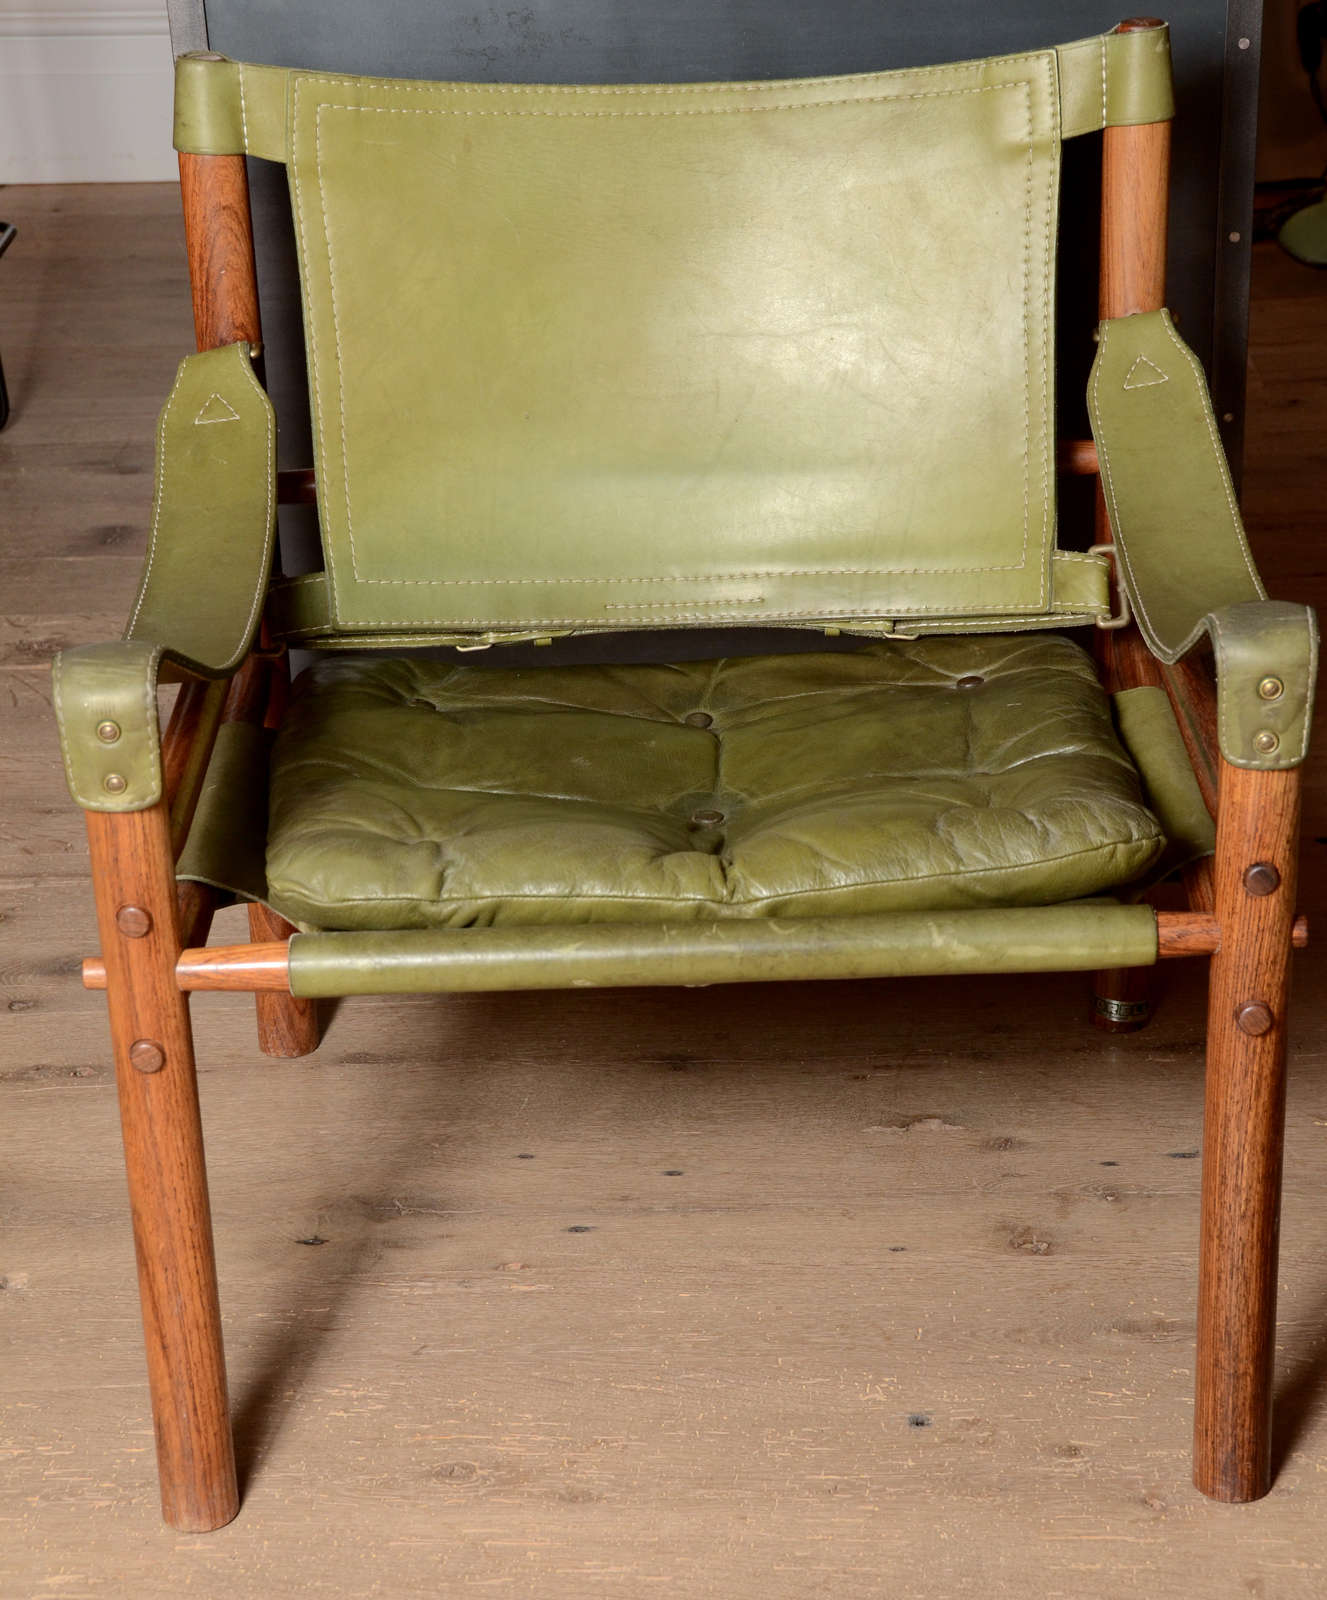 Stunning pair of Mid-Century Arne Norell Safari chairs in light olive green original leather